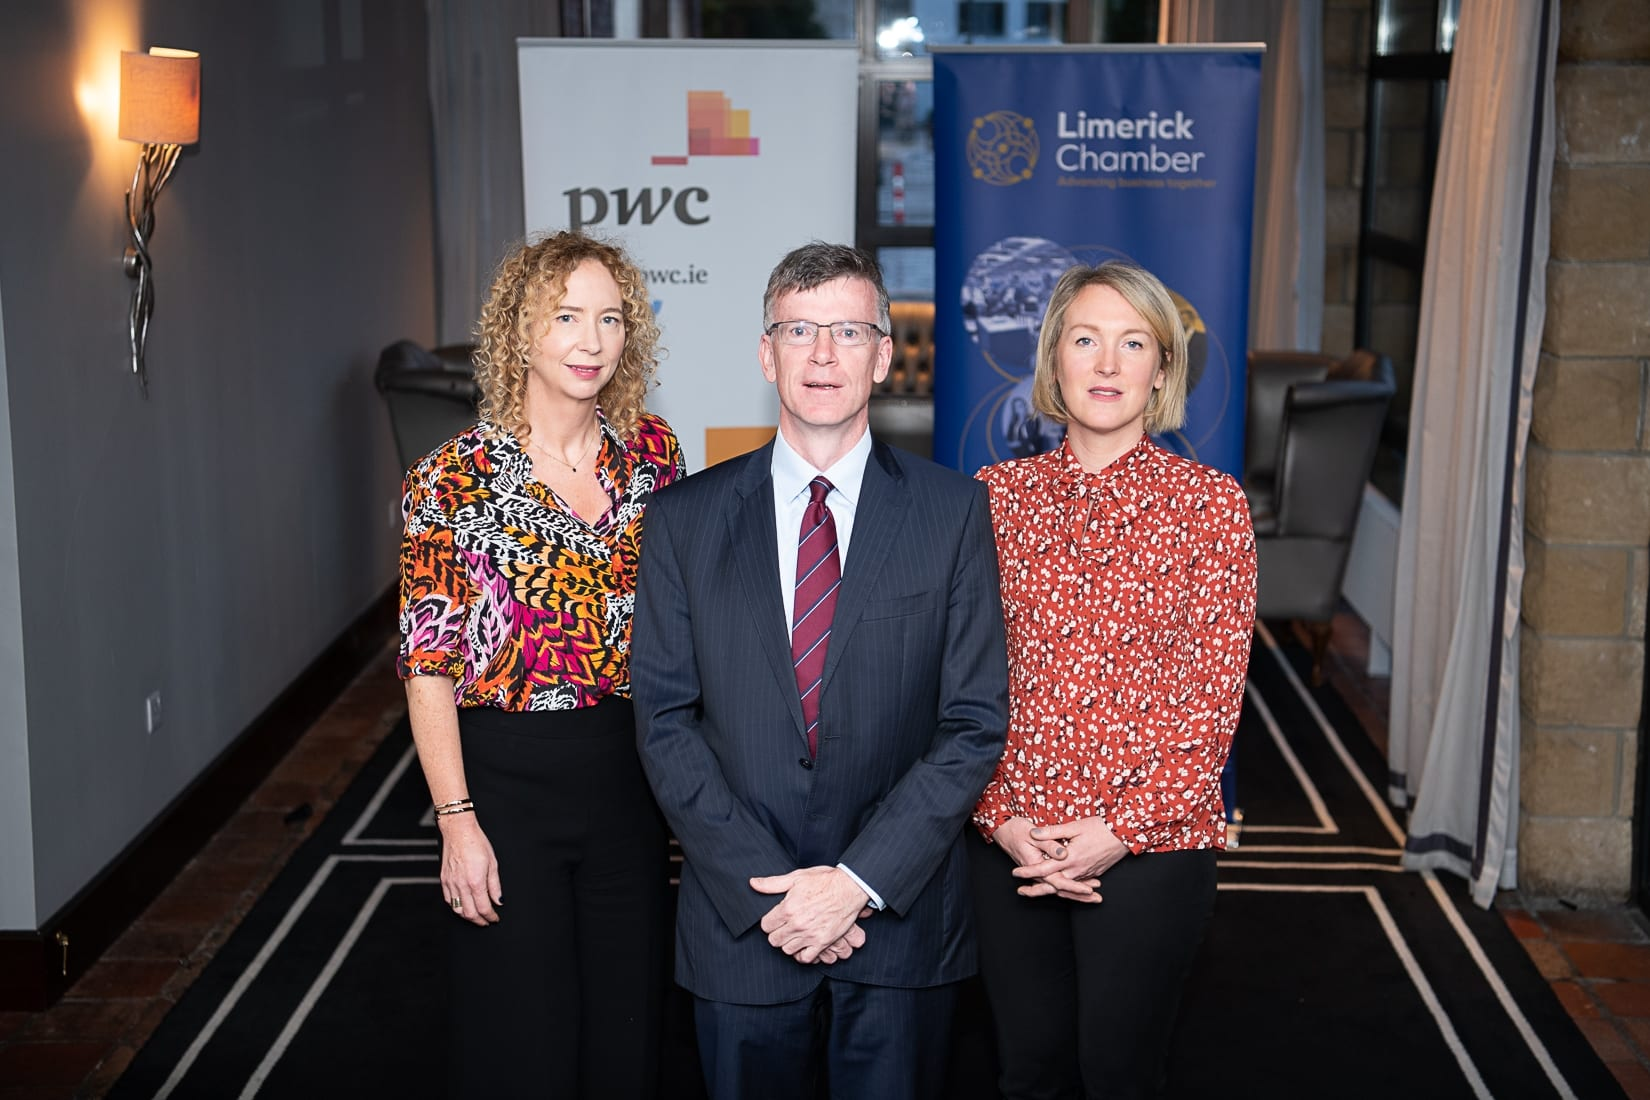 PWC Budget Breakfast in association with the Limerick Chamber which took place in the Castletroy Park Hotel on 9th October 2019, from left to right: Mairead Connolly - PWC / Speaker, Professor Alan Ahearne - Speaker, Emer Hodges - PWC / SPEAKER,  Photo by Morning Star Photography